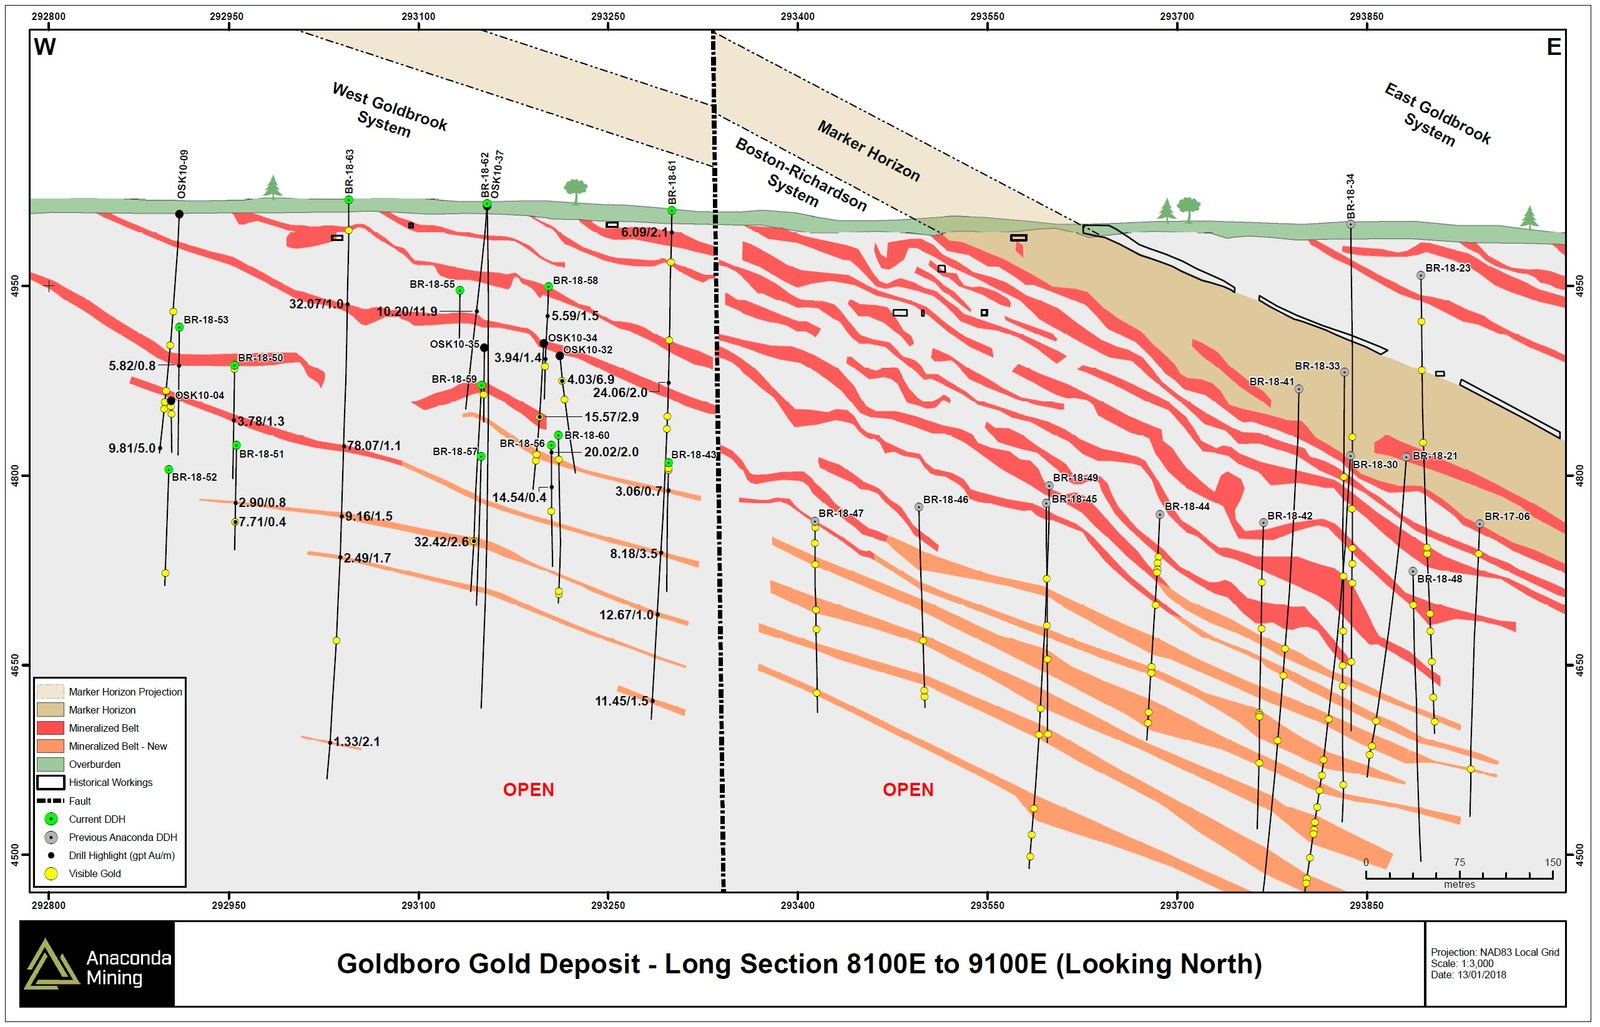 Exhibit D. A long section through the BR and WG Gold Systems showing the location of the Marker Horizon relative to the mineralized zones in both the BR and WG Gold Systems as well as the offset across the fault between these two areas. The common relationship of mineralized zones to the Marker Horizon demonstrate that the WG Gold System is equivalent to the BR Gold System. Several of the mineralized zones from the BR and WG Gold Systems are not shown in this long section as they do not intersect the plane of the section.